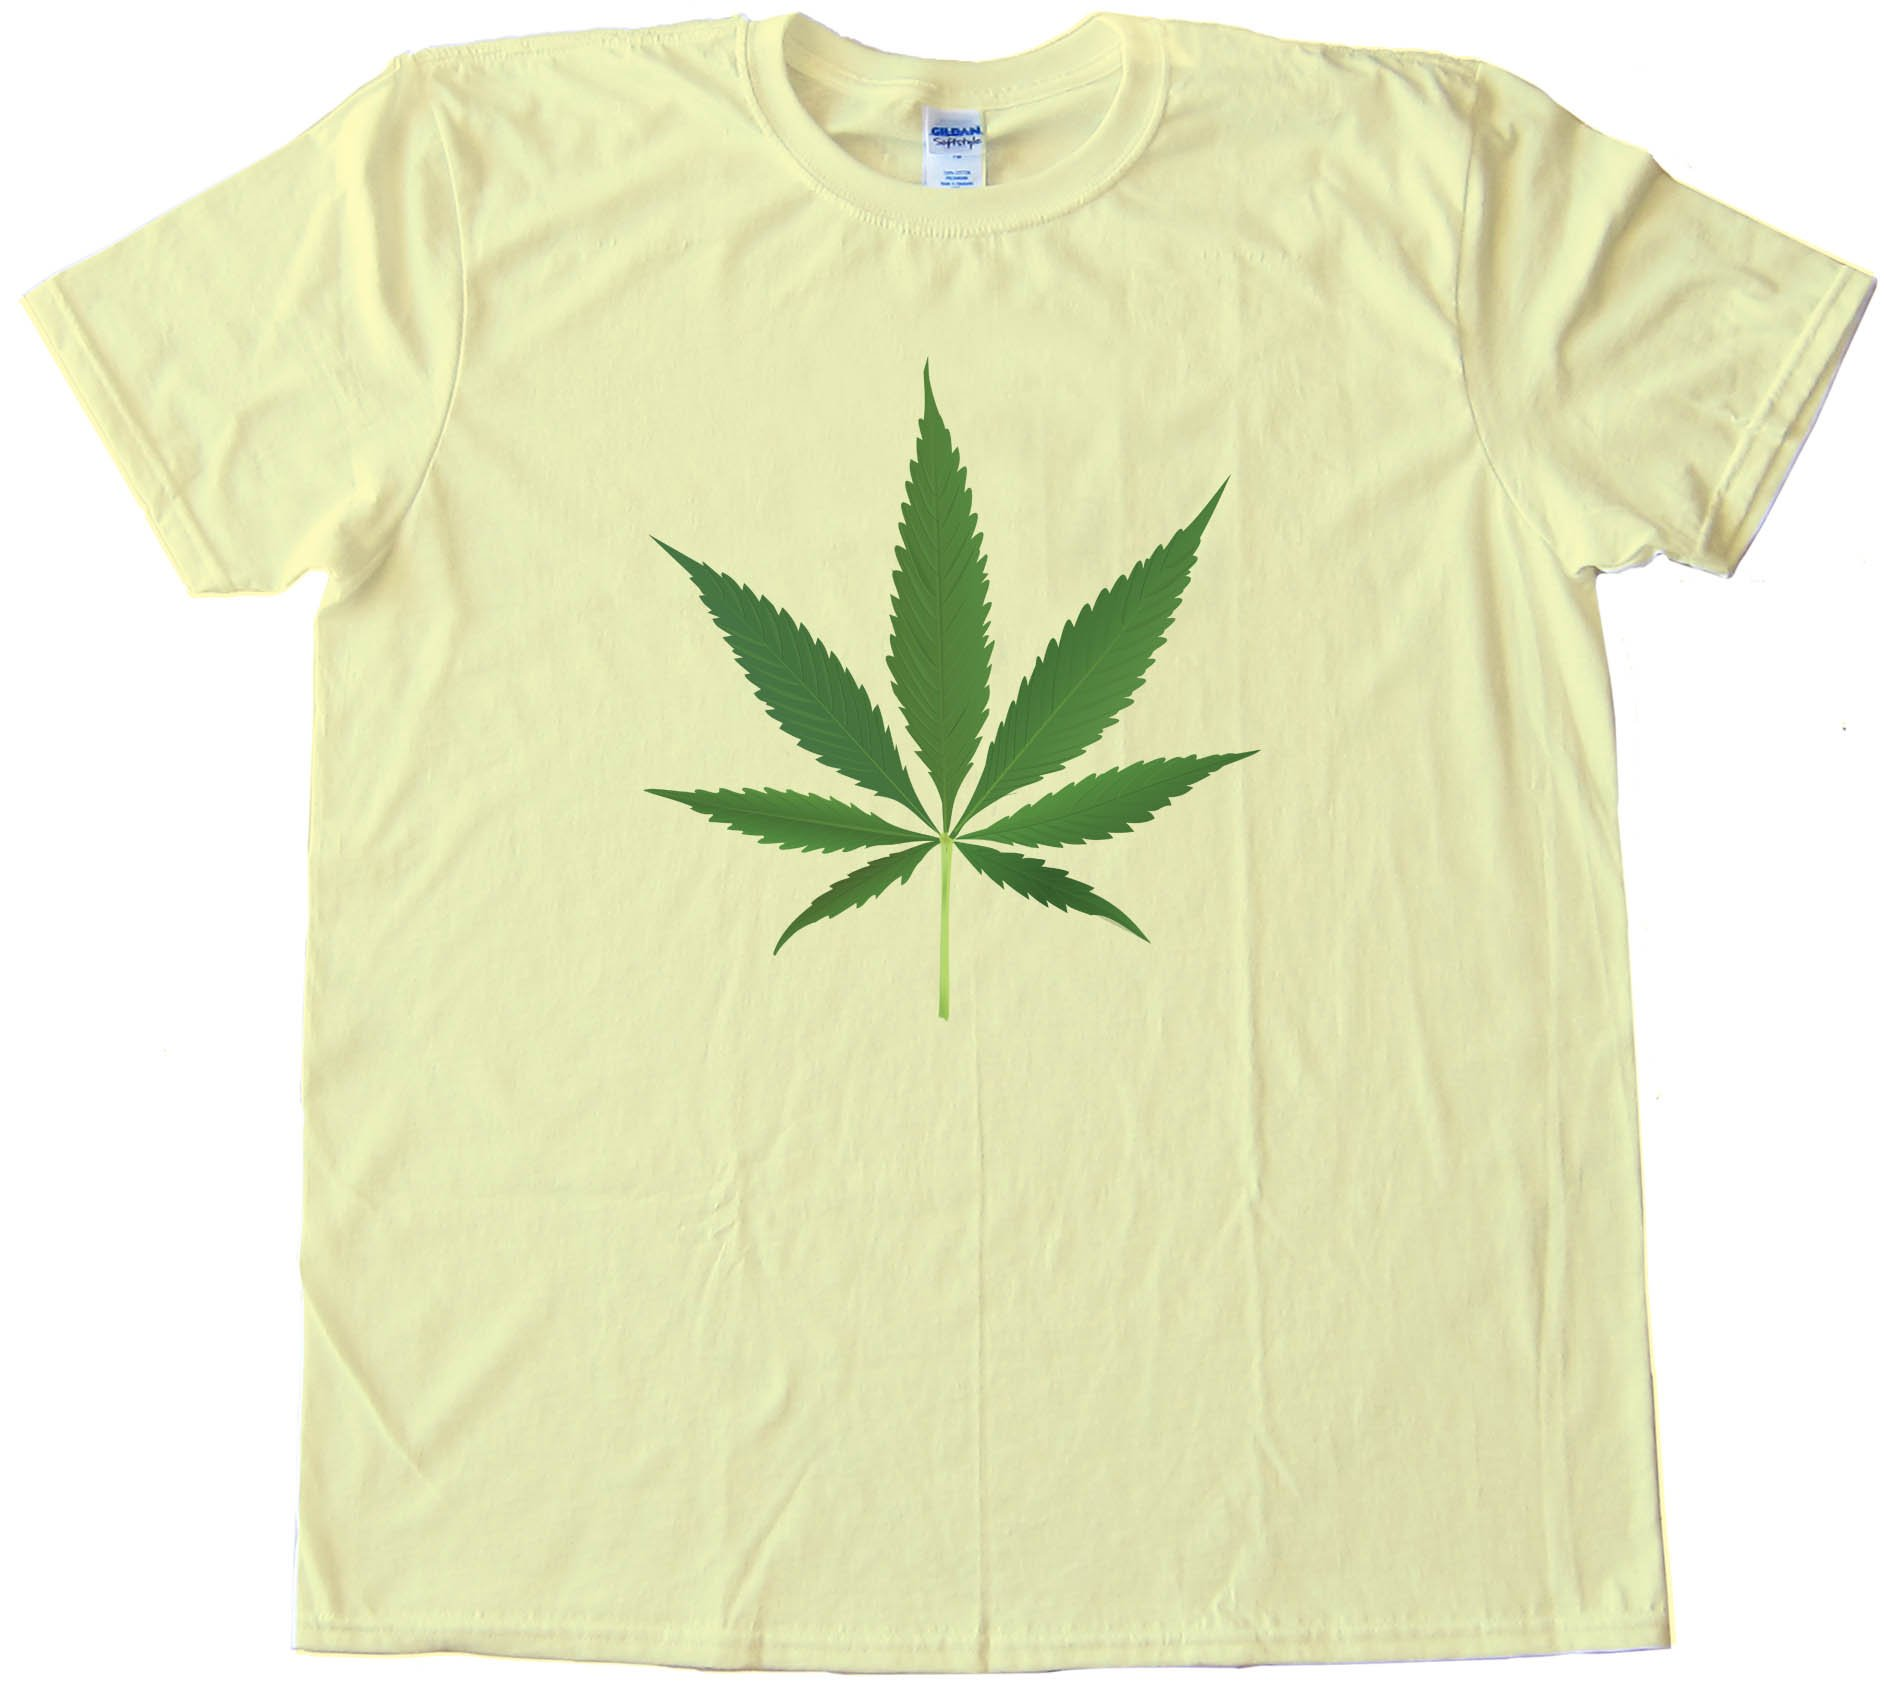 Big Marijuana Leaf Pot Weed Tee Shirt